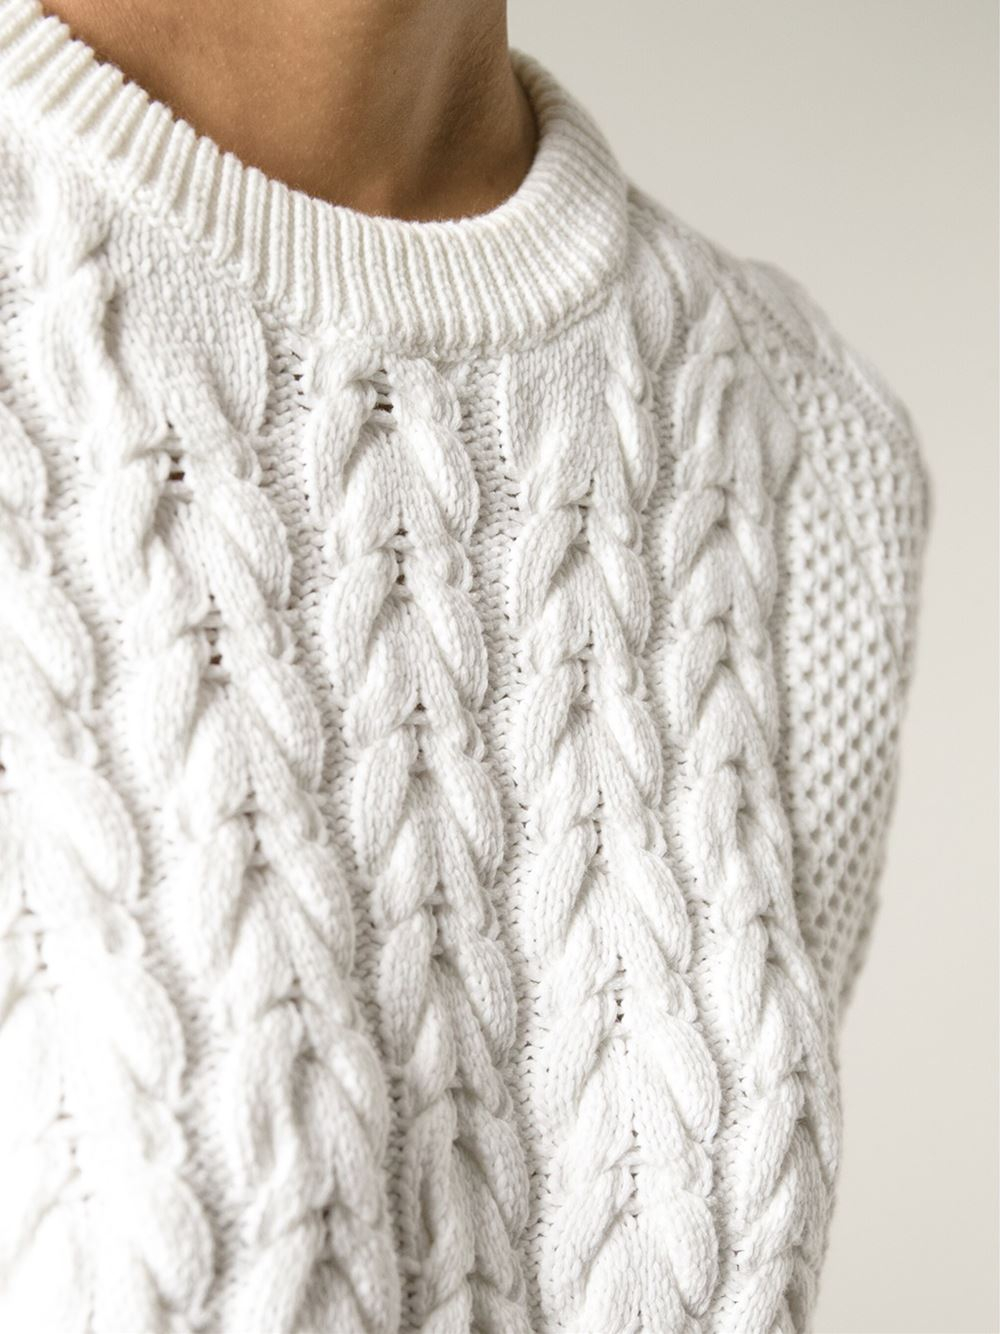 Sweater Knit : Lyst joseph short sleeve cable knit sweater in white